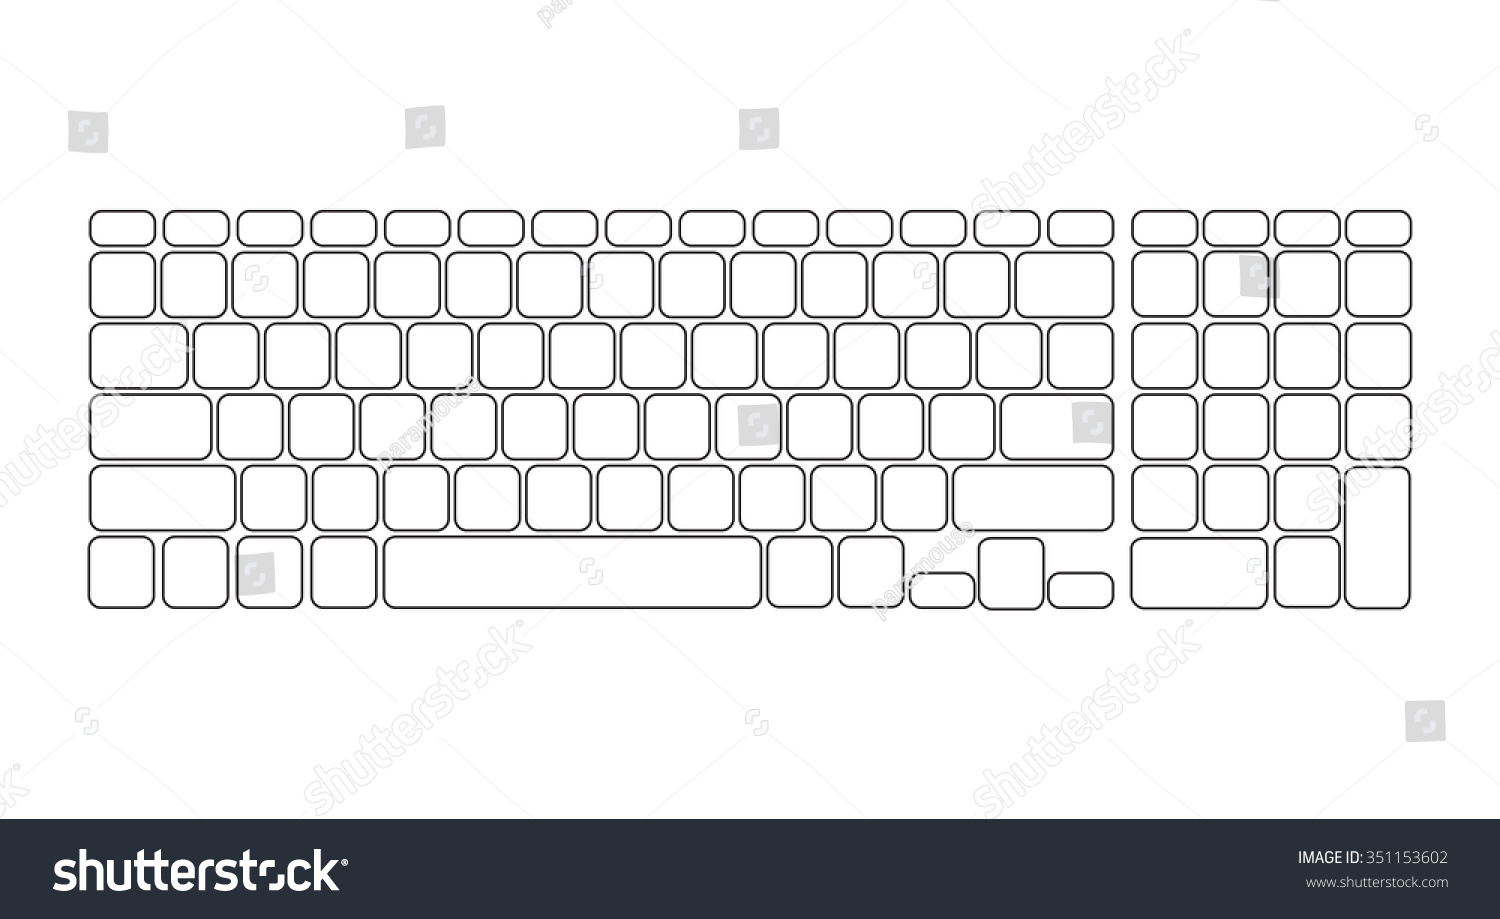 Clip Art Of Blank Qwerty Keyboard Cliparts